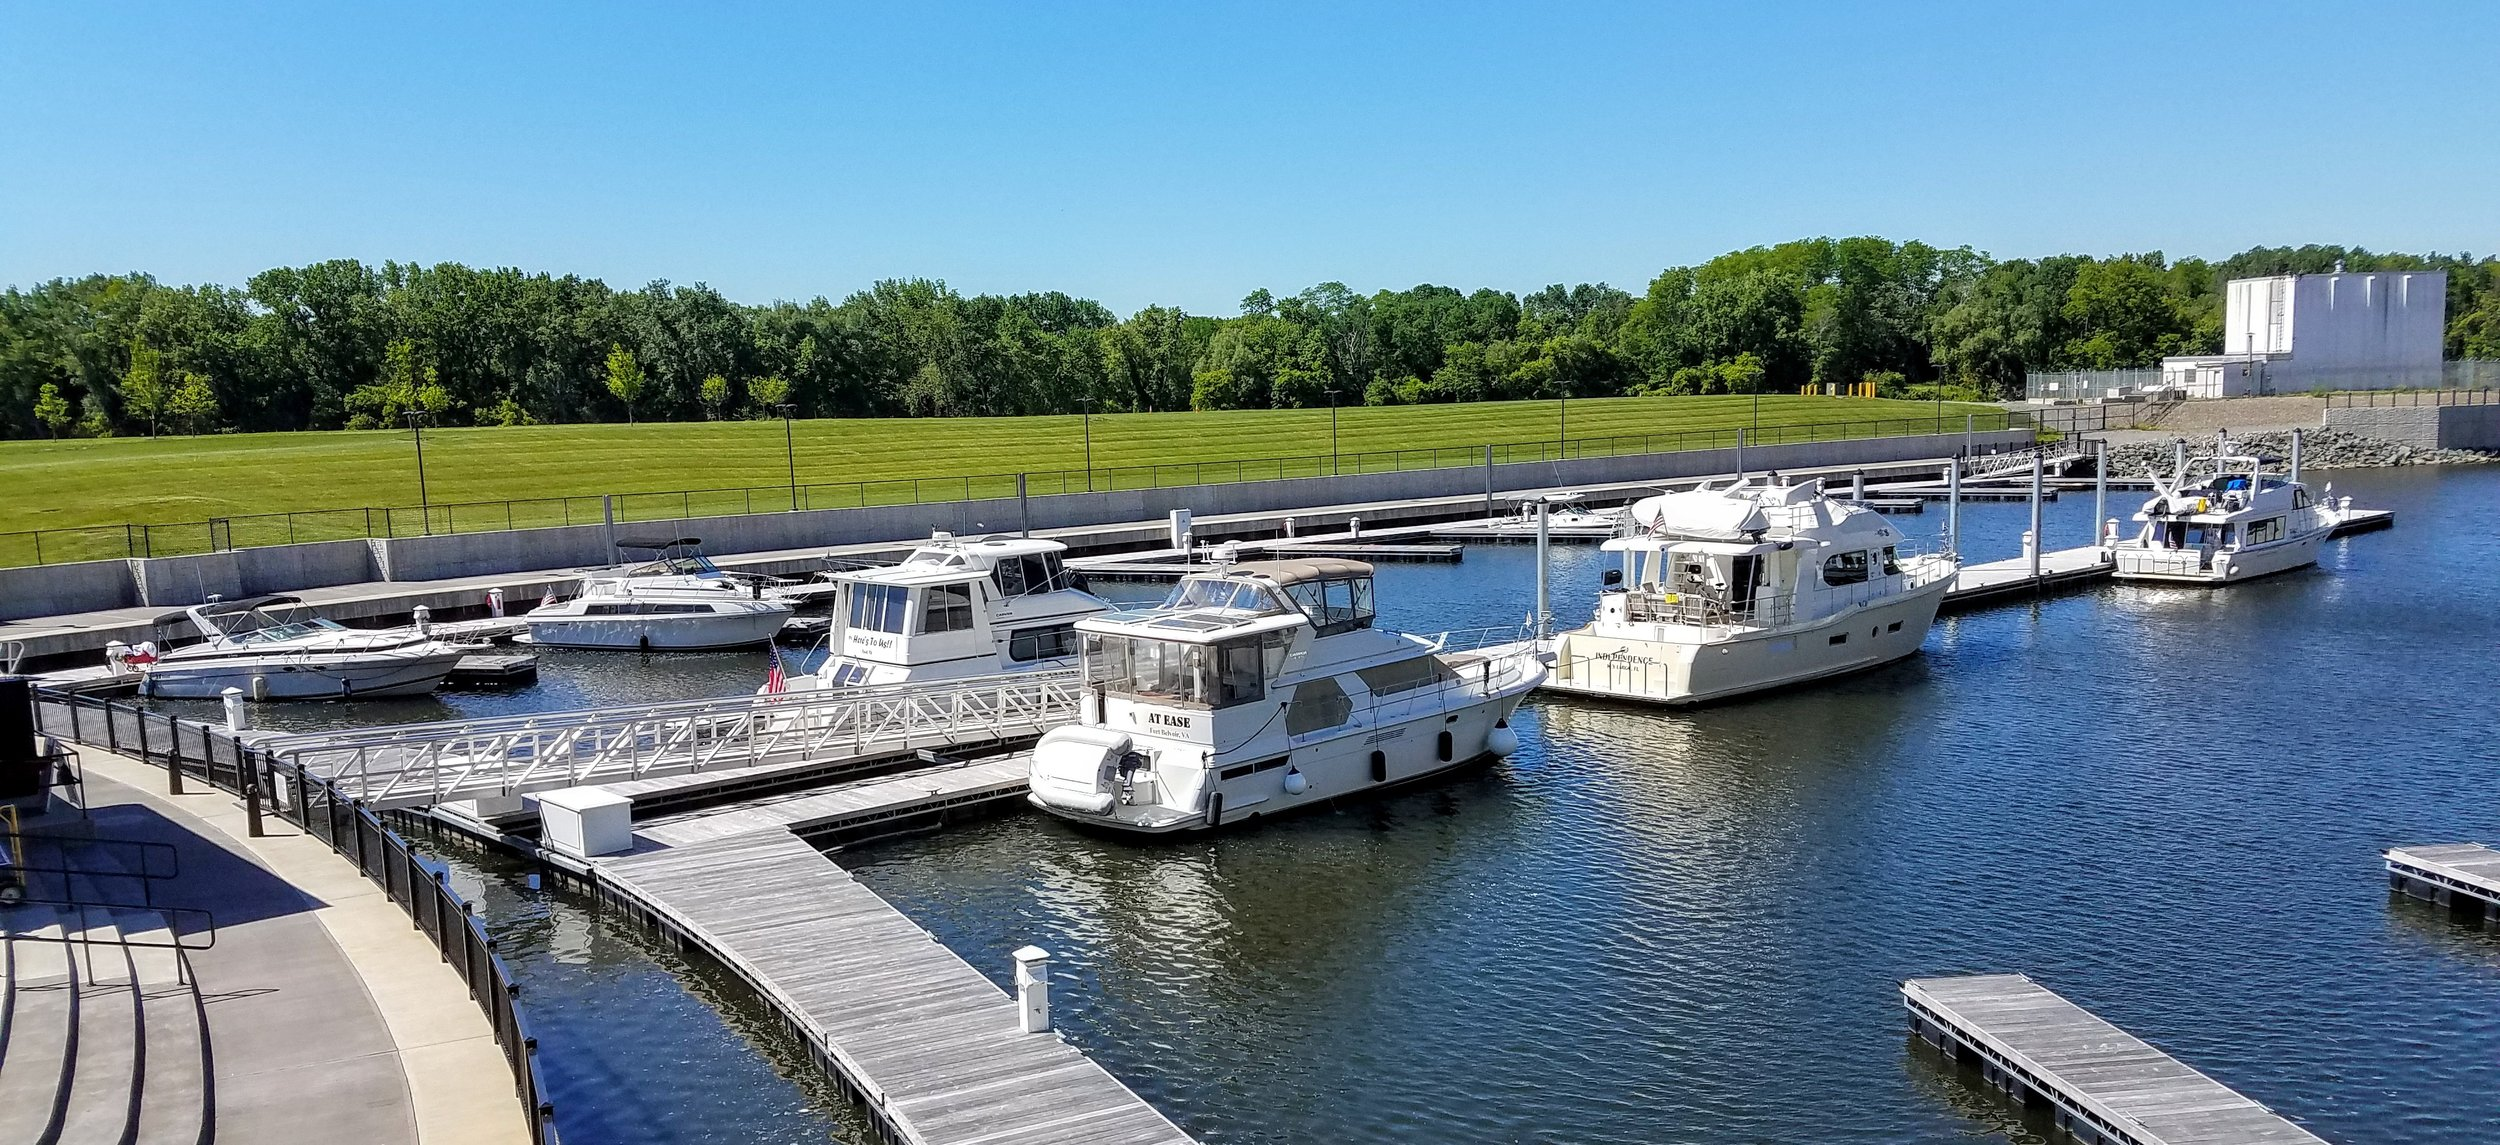 Our overnight spot at the Mohawk Harbor Marina in Schenectady, NY